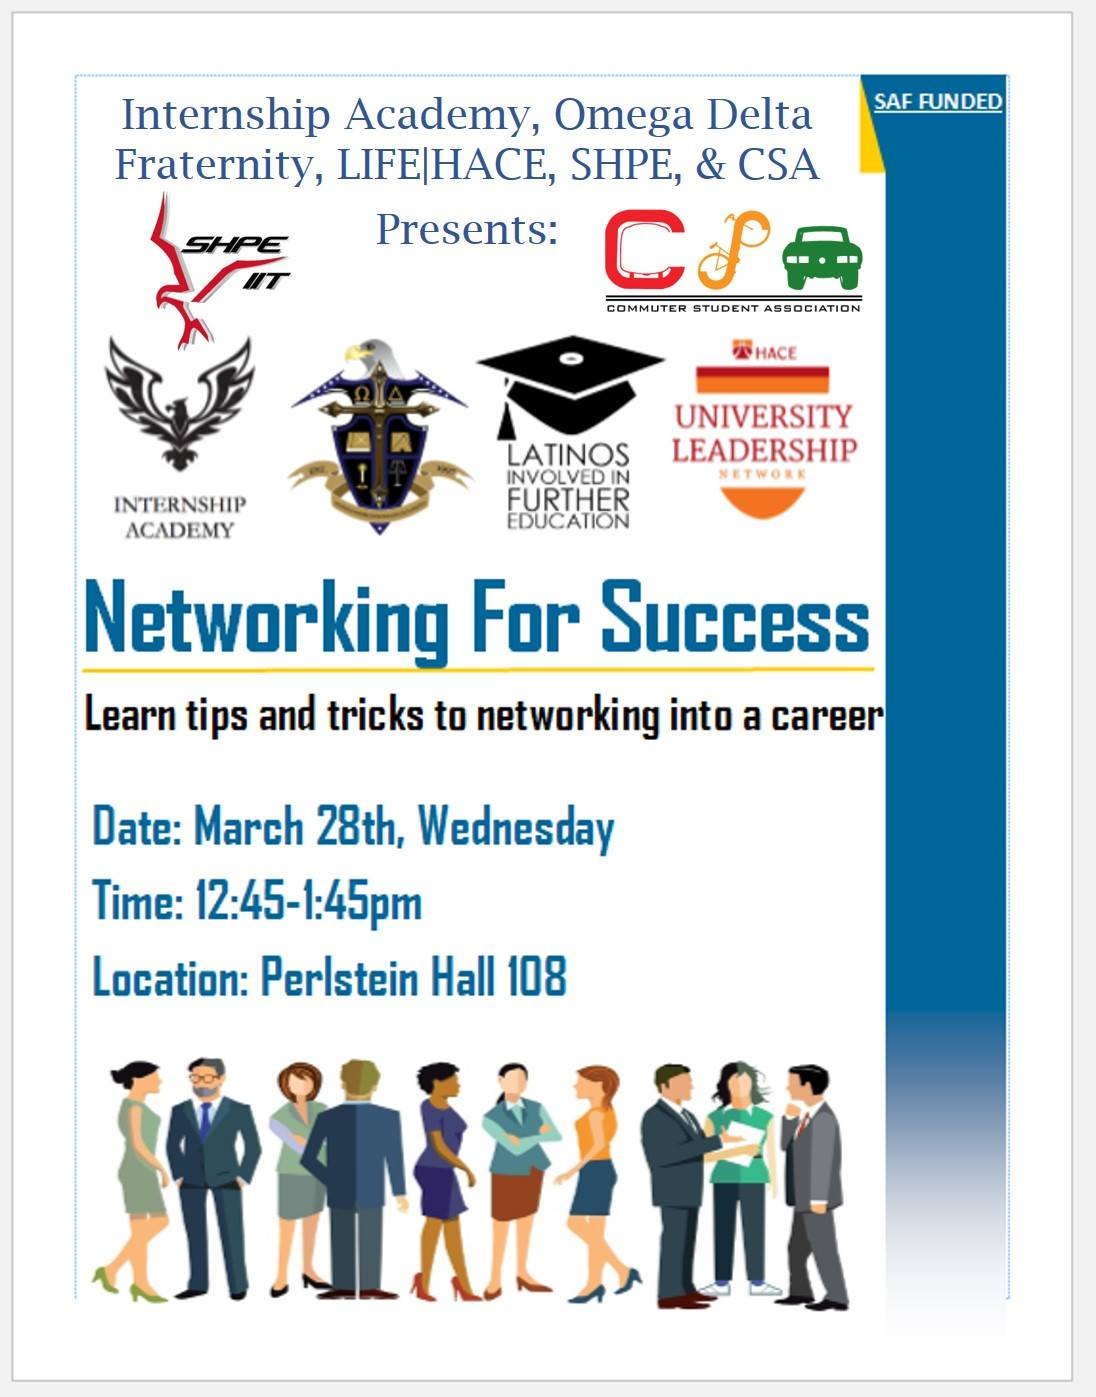 Networking for success flyer.jpg